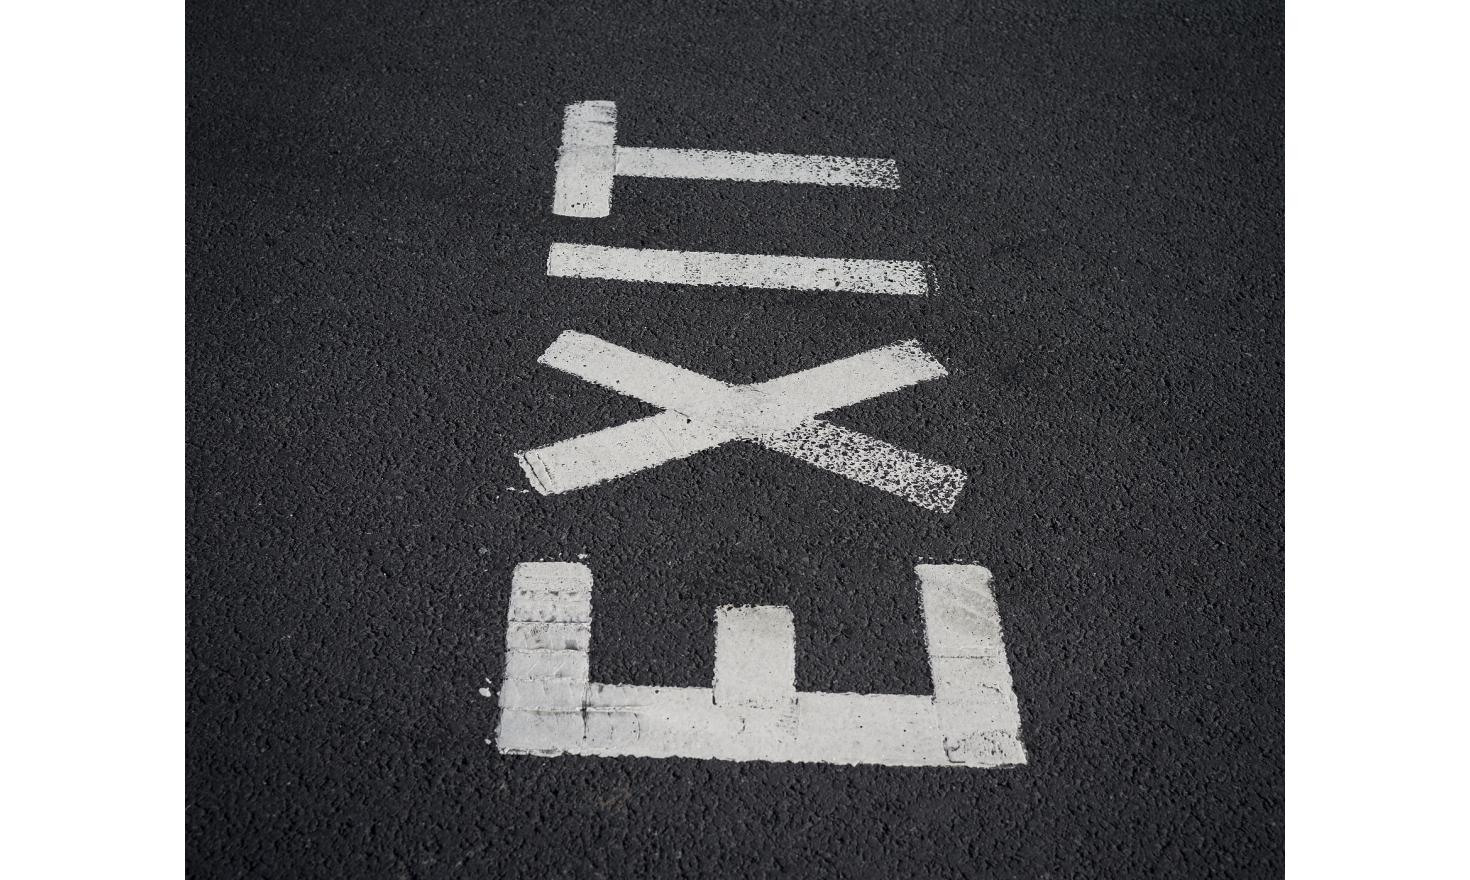 An Exit sign near on a road in the United Kingdom.